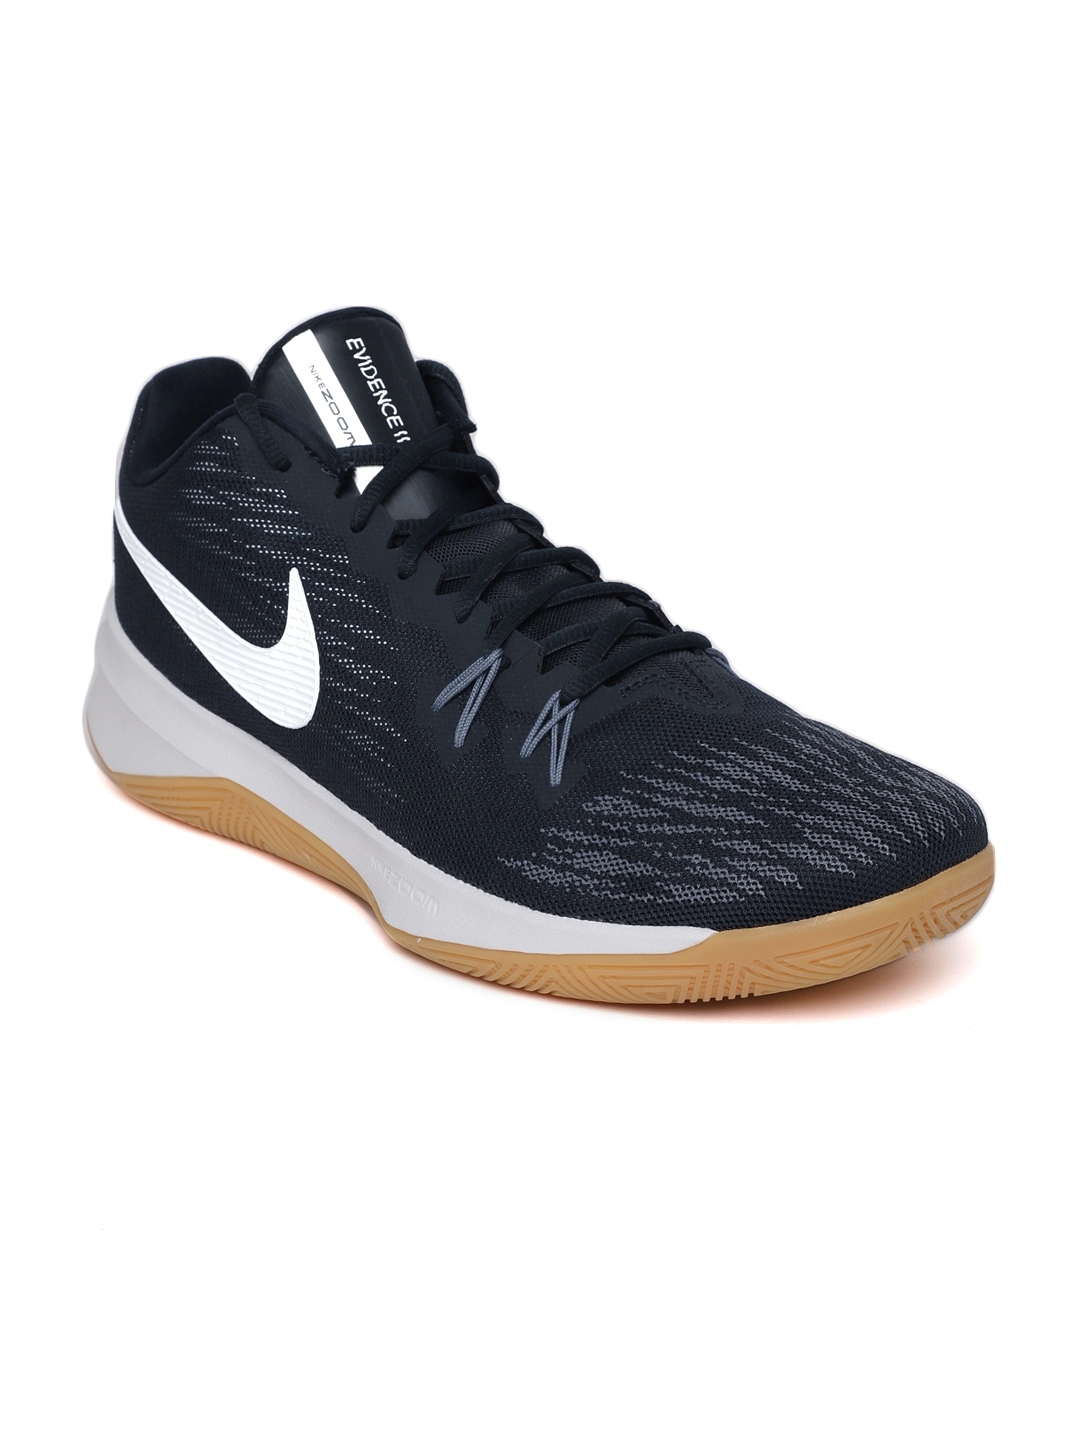 1f3e191111cd Buy Nike Men Navy ZOOM EVIDENCE II Basketball Shoes - Sports Shoes ...